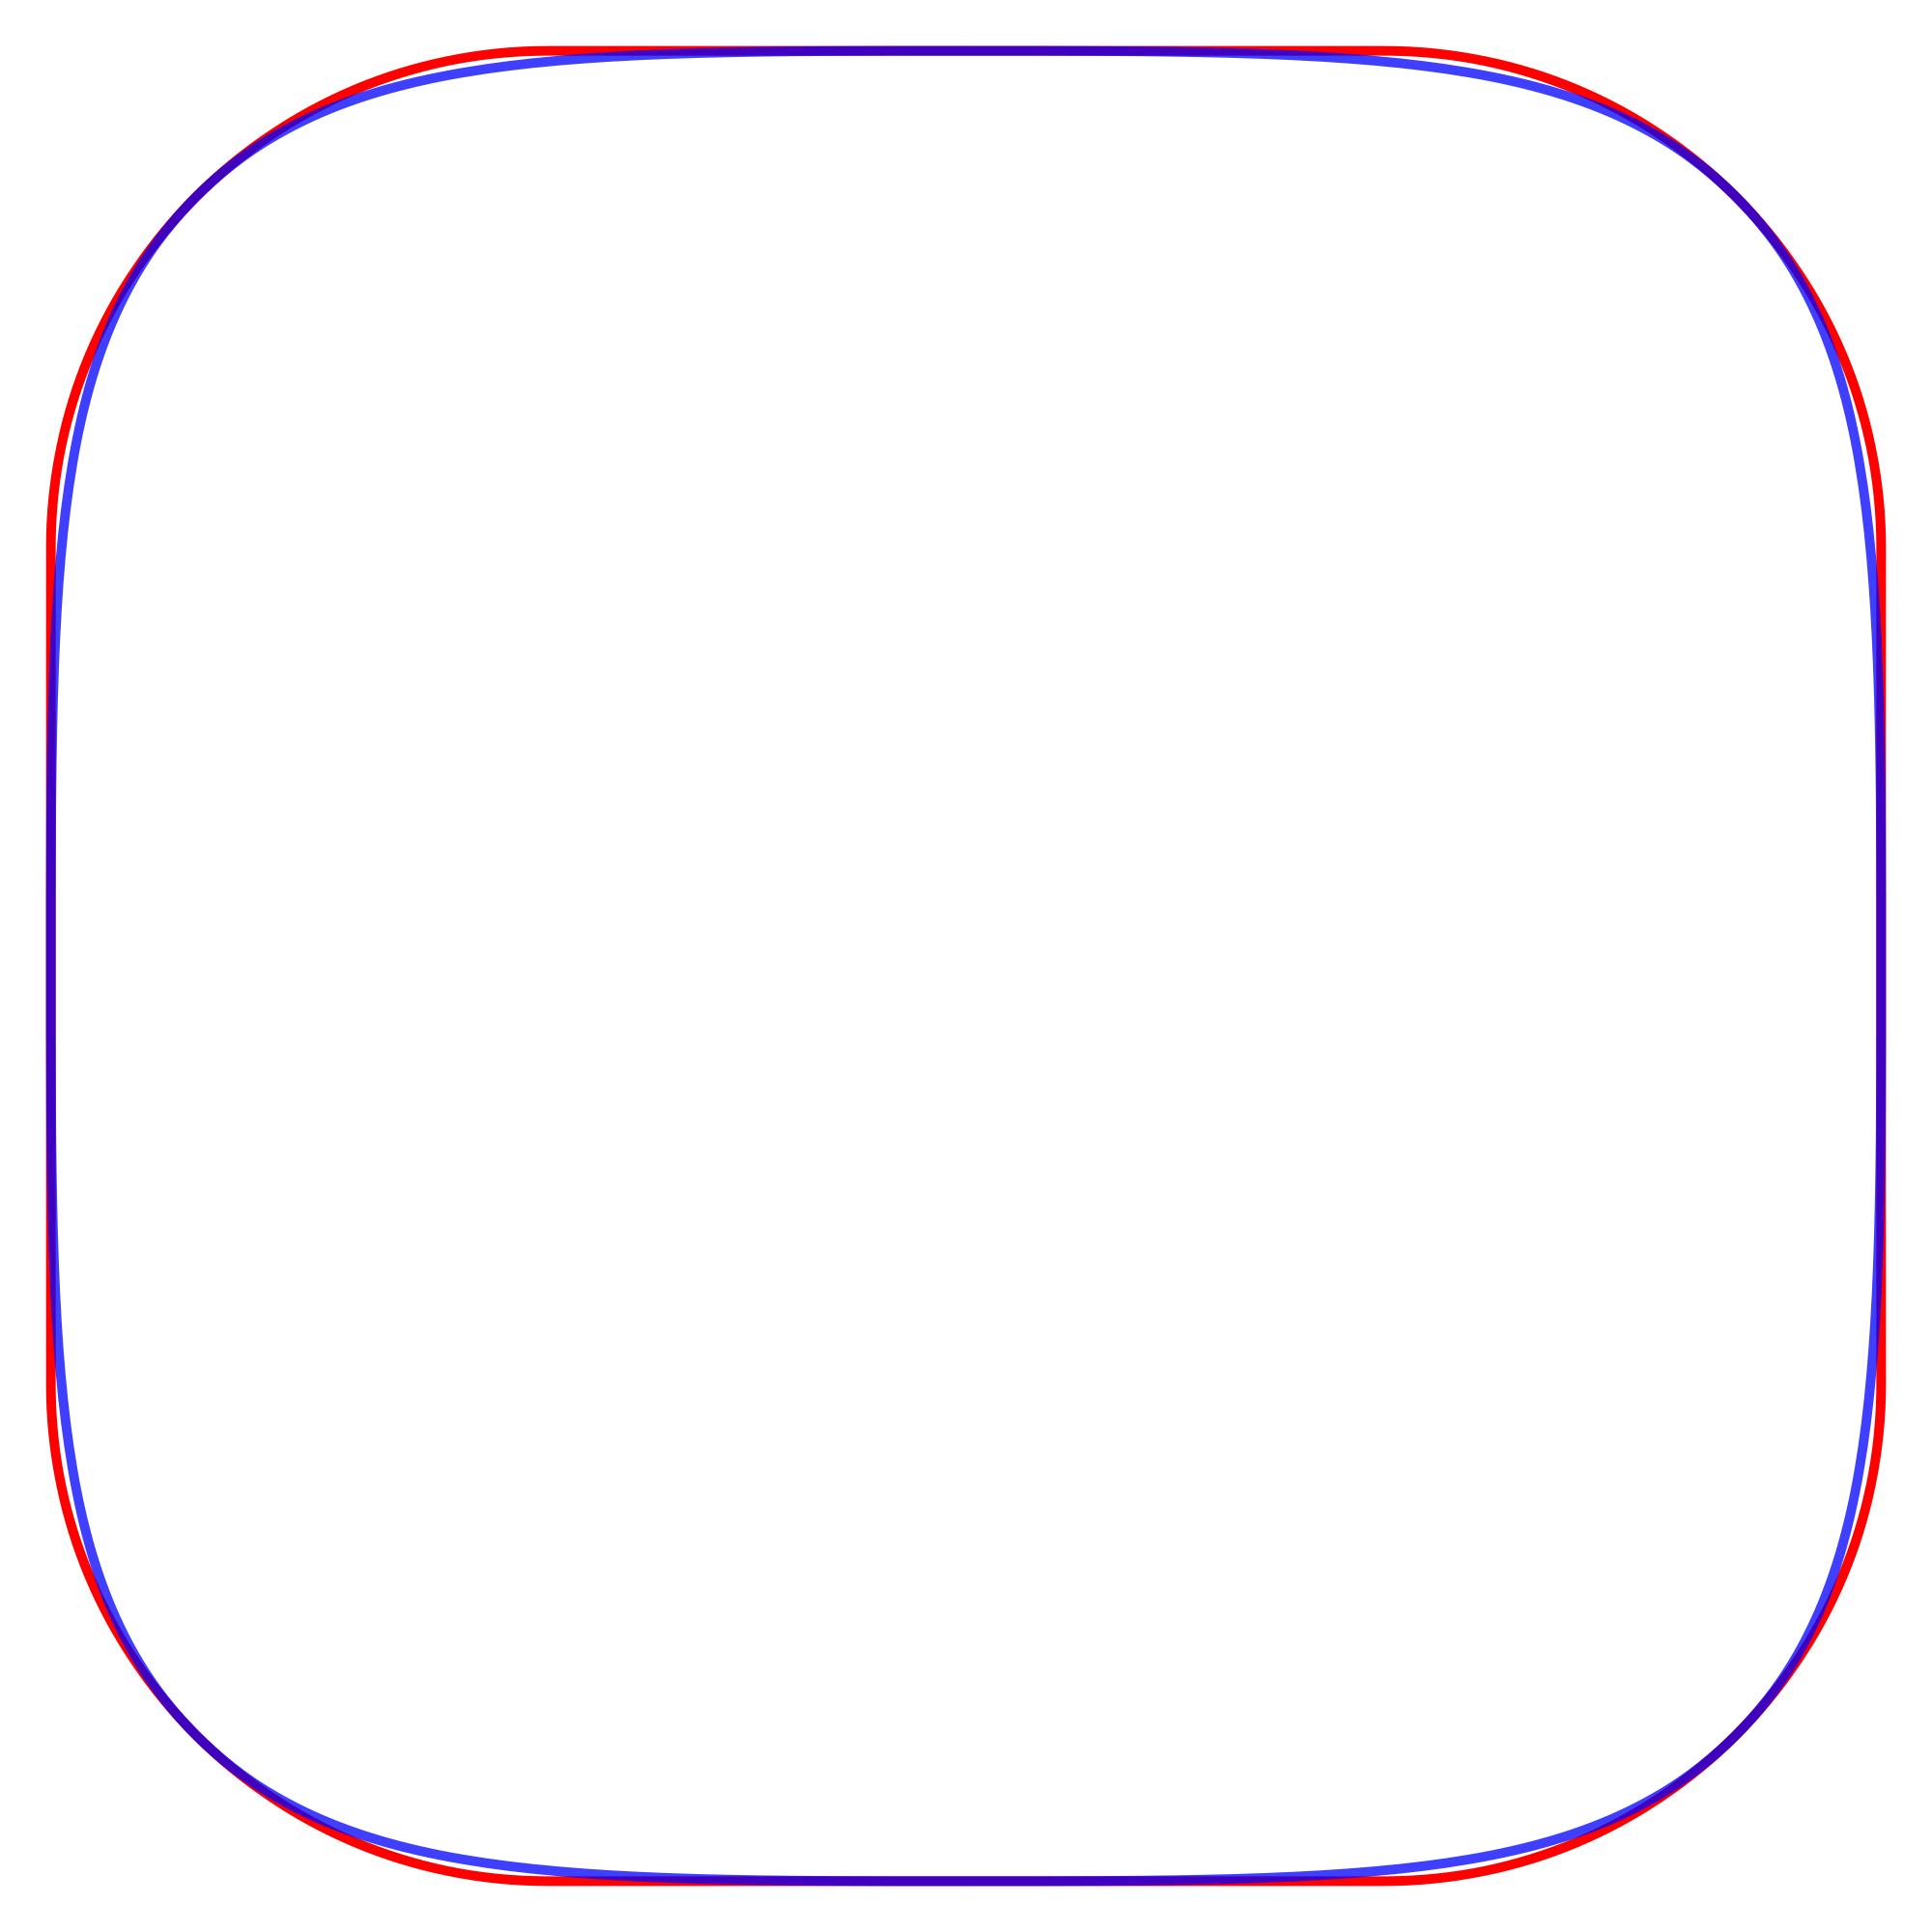 File squircle rounded svg. Square clipart circle shape